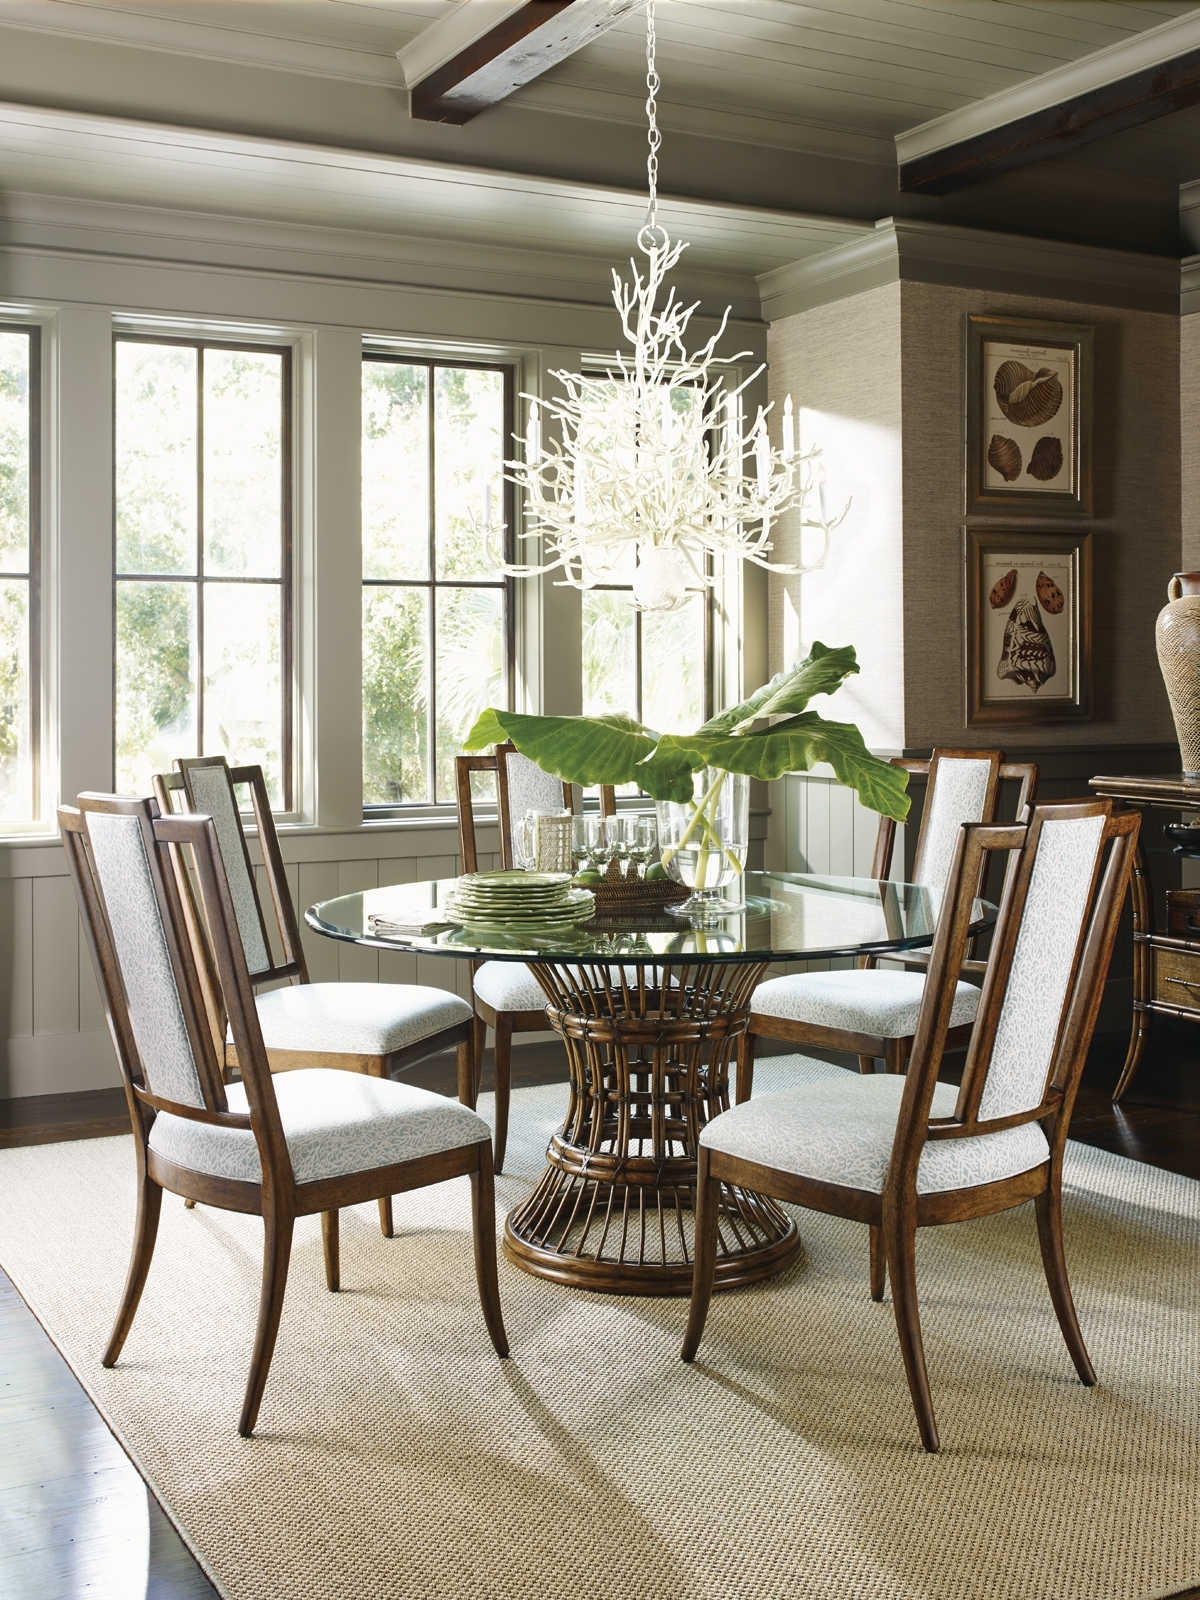 Lexington Home Brands Within 2017 Balinese Dining Tables (View 17 of 25)